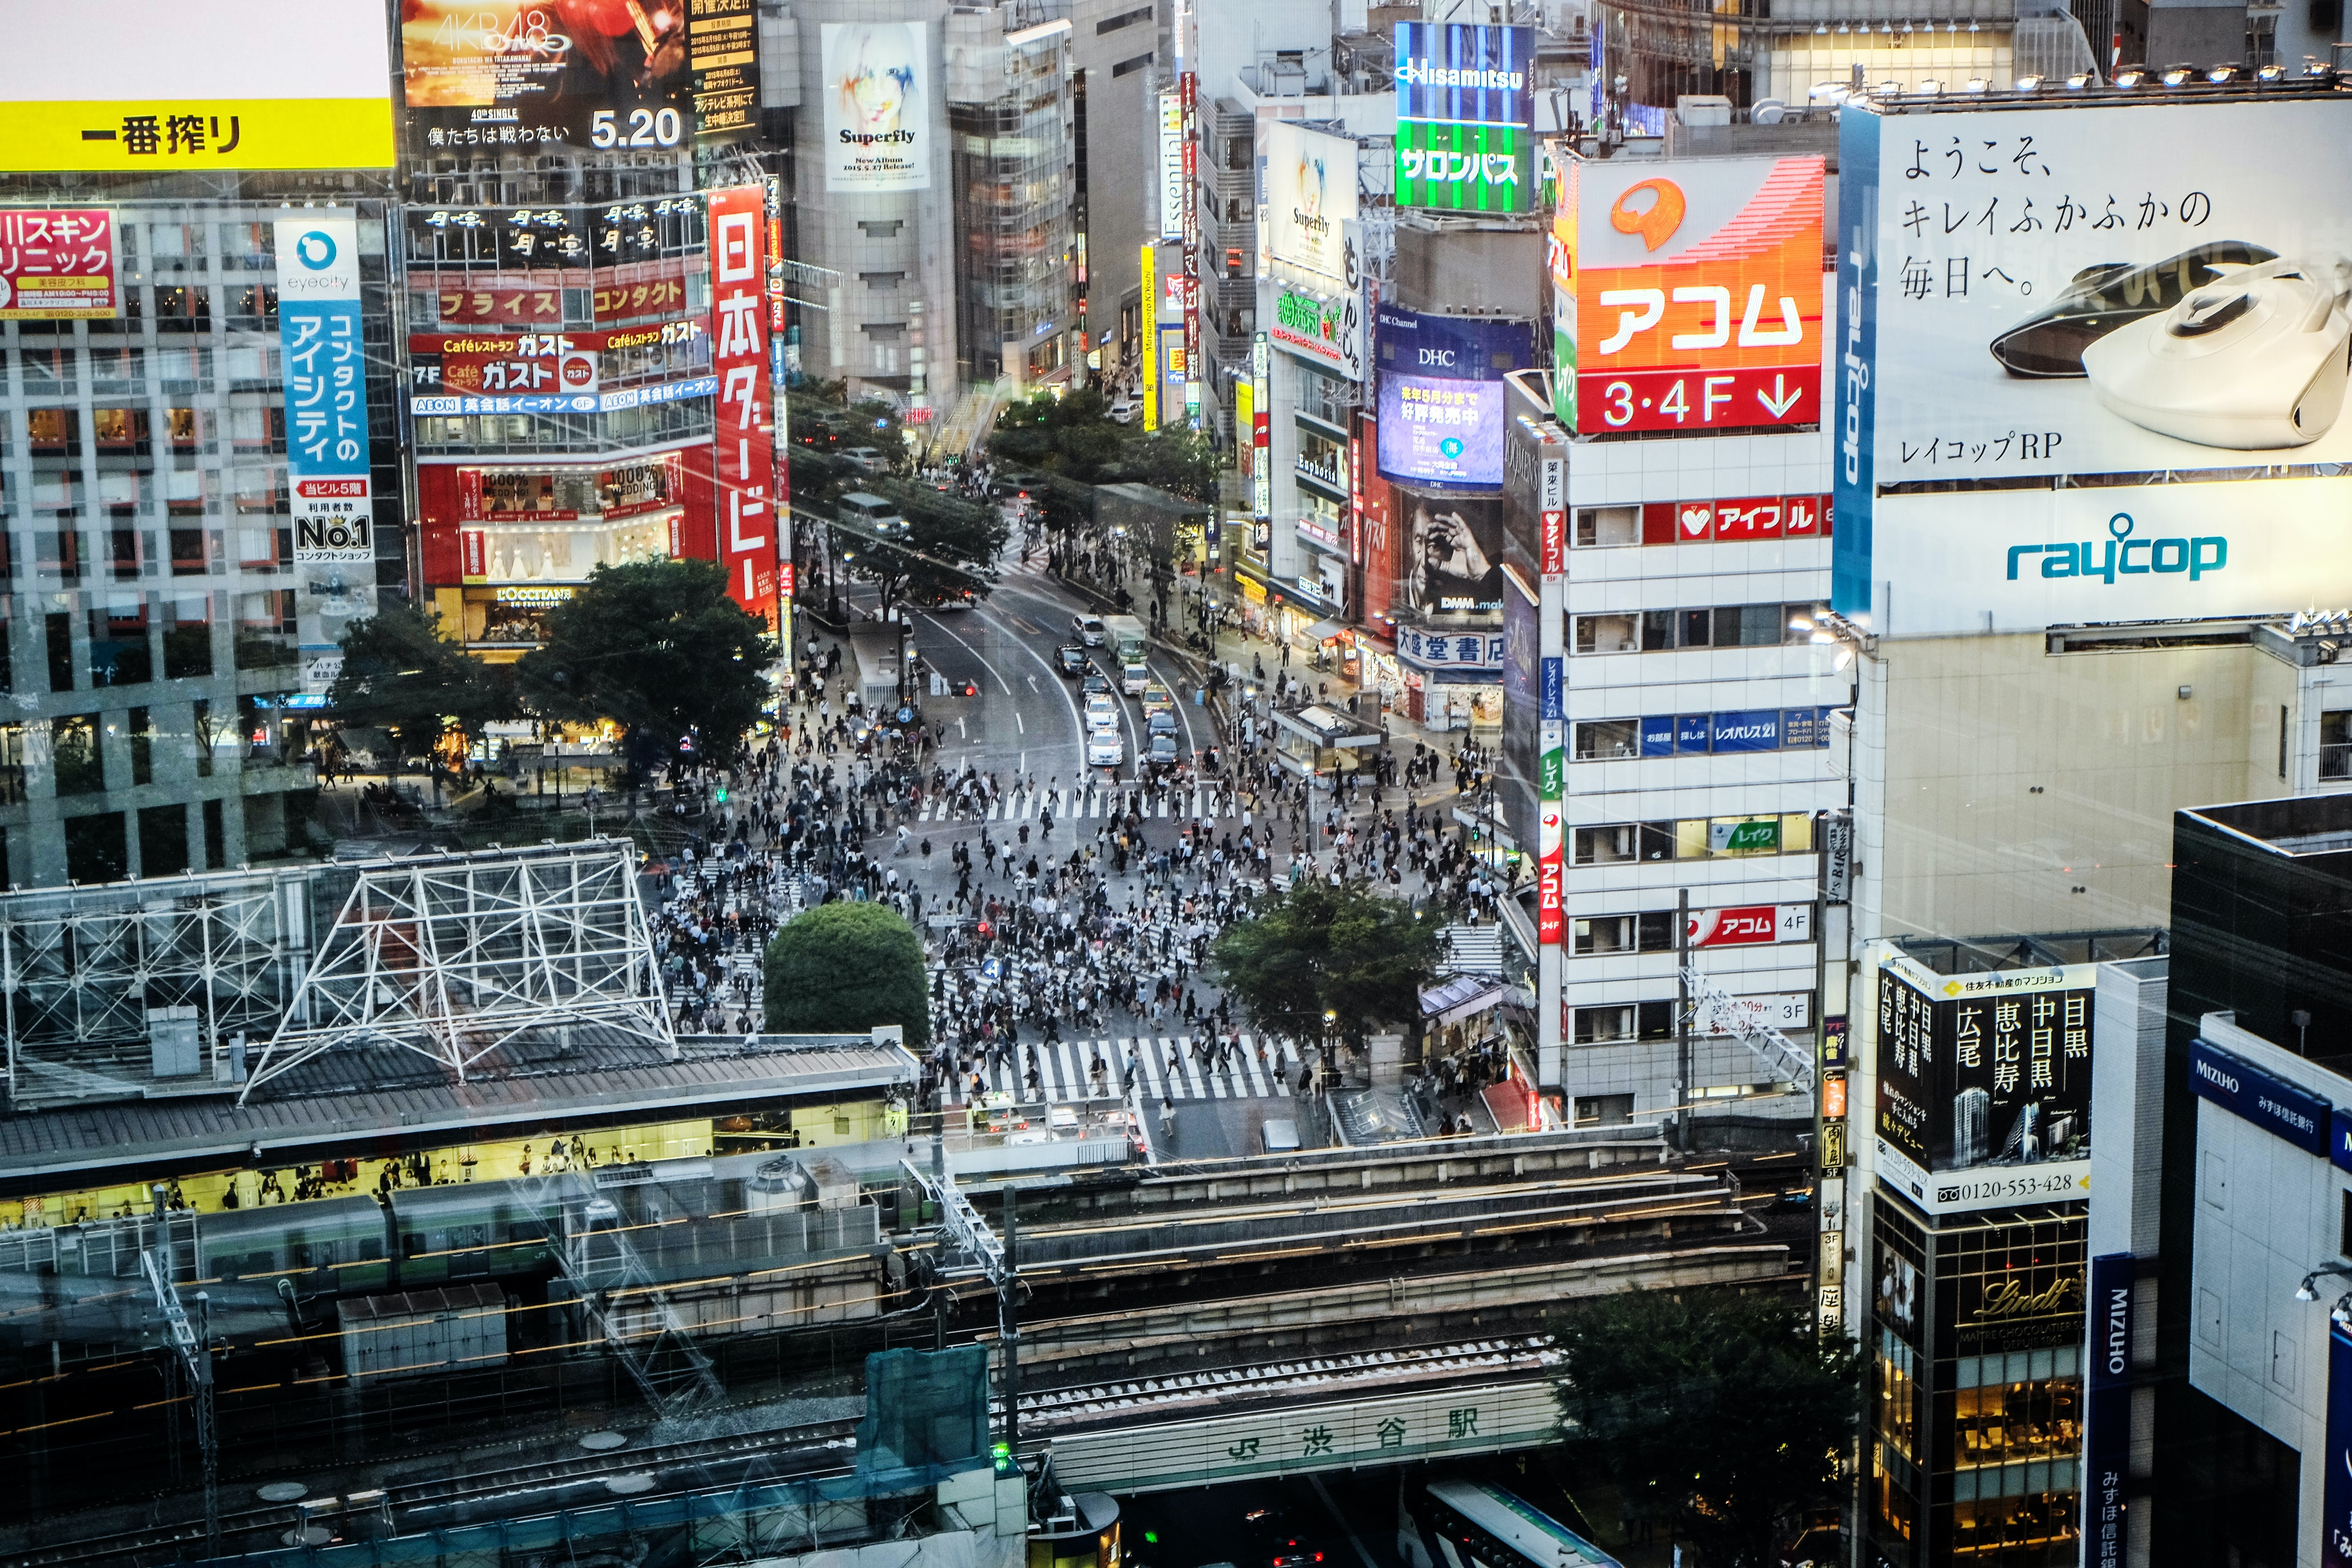 A distant shot of a crowded intersection surrounded by colorful advertisements